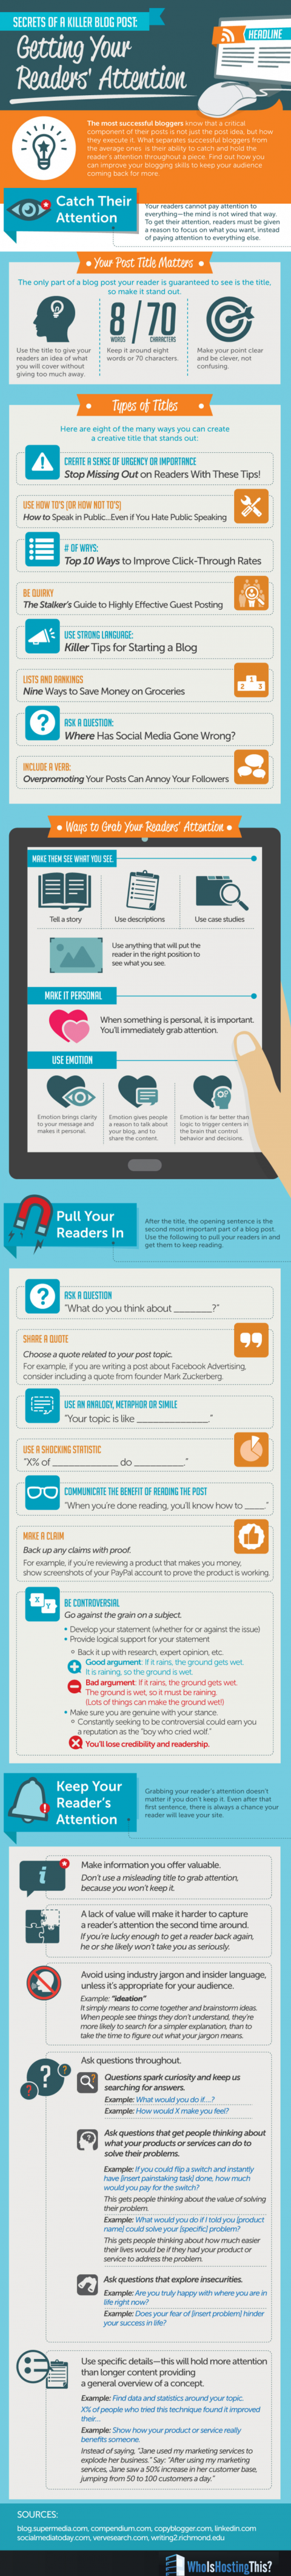 Infographic – Getting your readers attention (Secrets of a killer blog post)